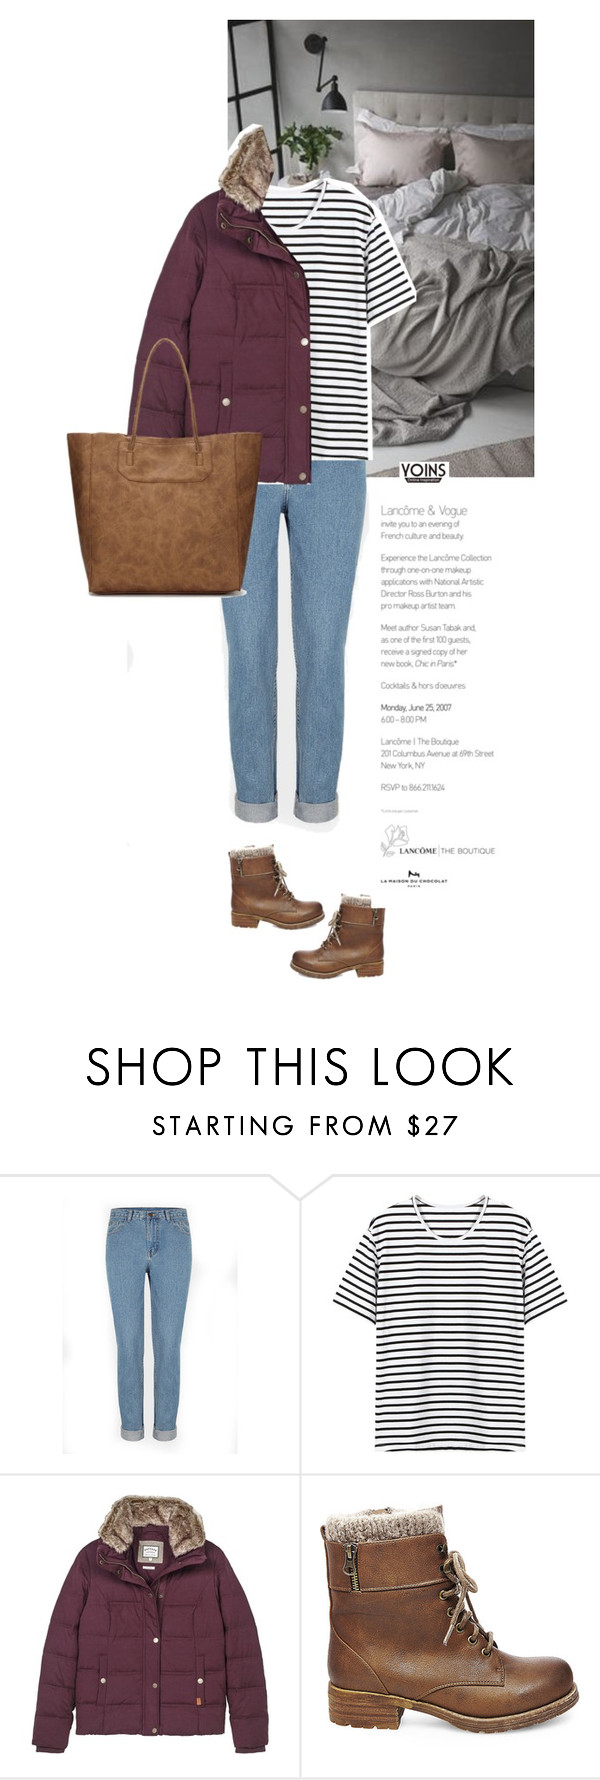 """""""YOINS"""" by s-thinks ❤ liked on Polyvore featuring Fat Face and Steve Madden"""